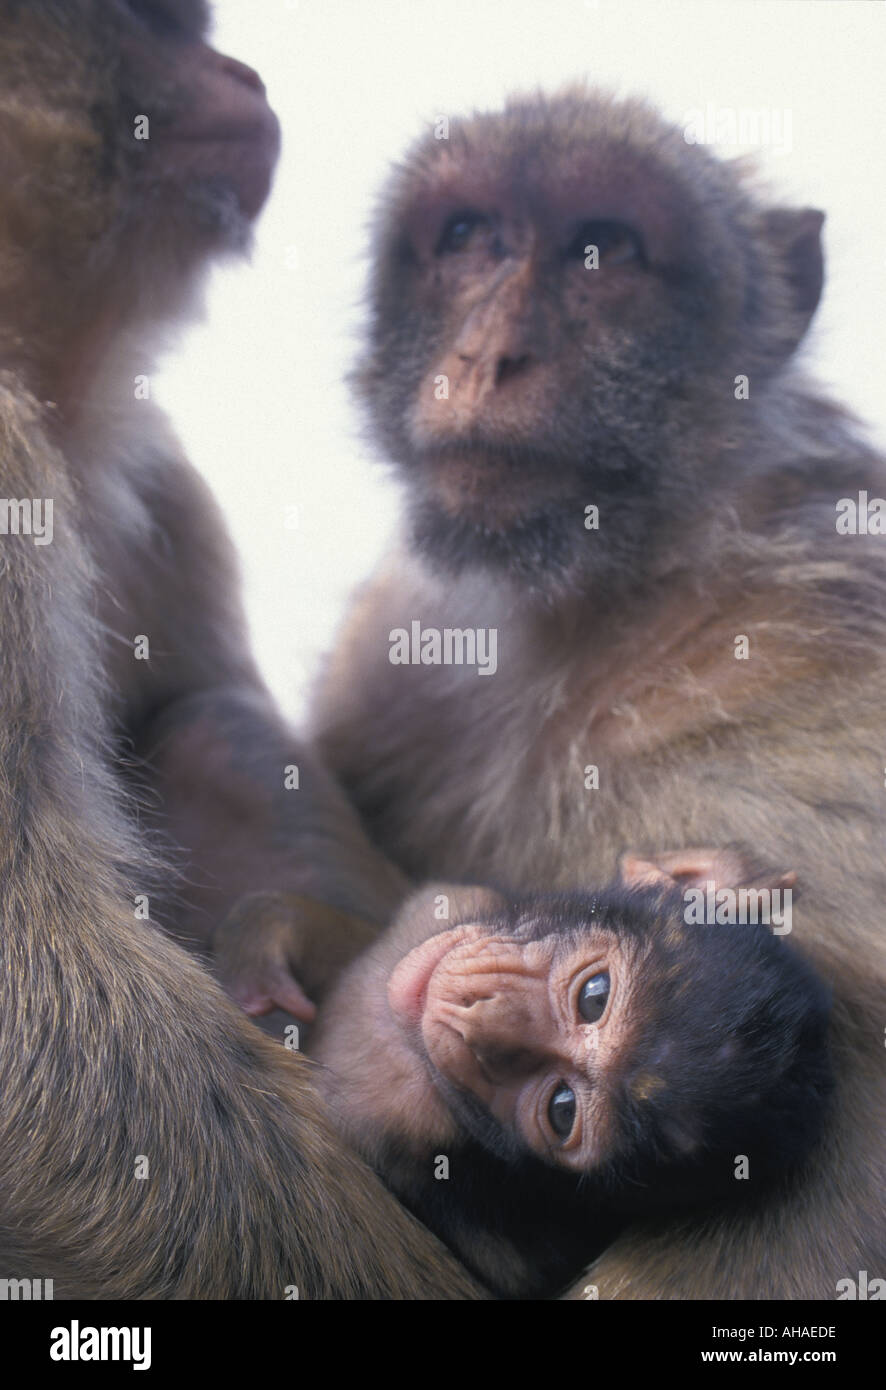 Macaques - Stock Image